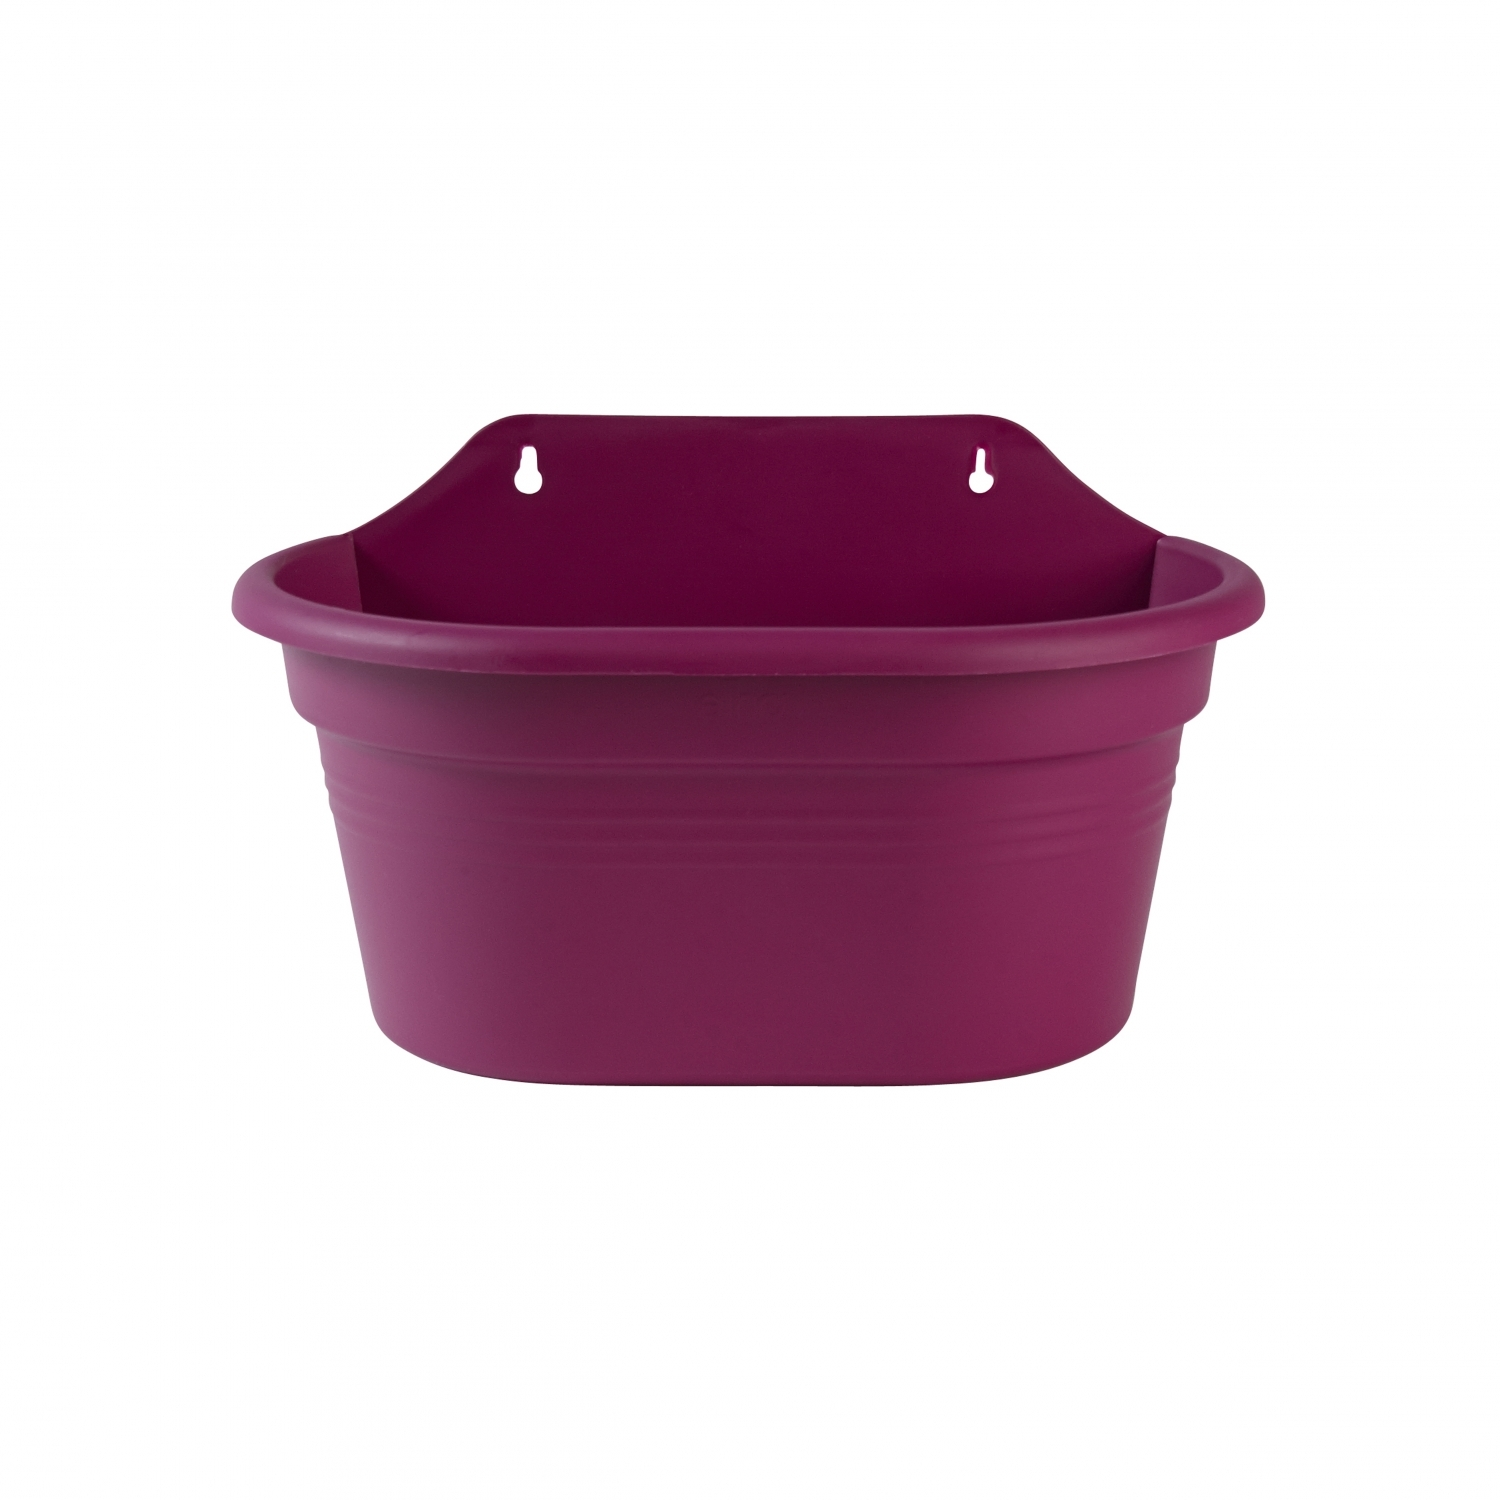 Elho Green Basics Wall Pot All-in-1 Cherry